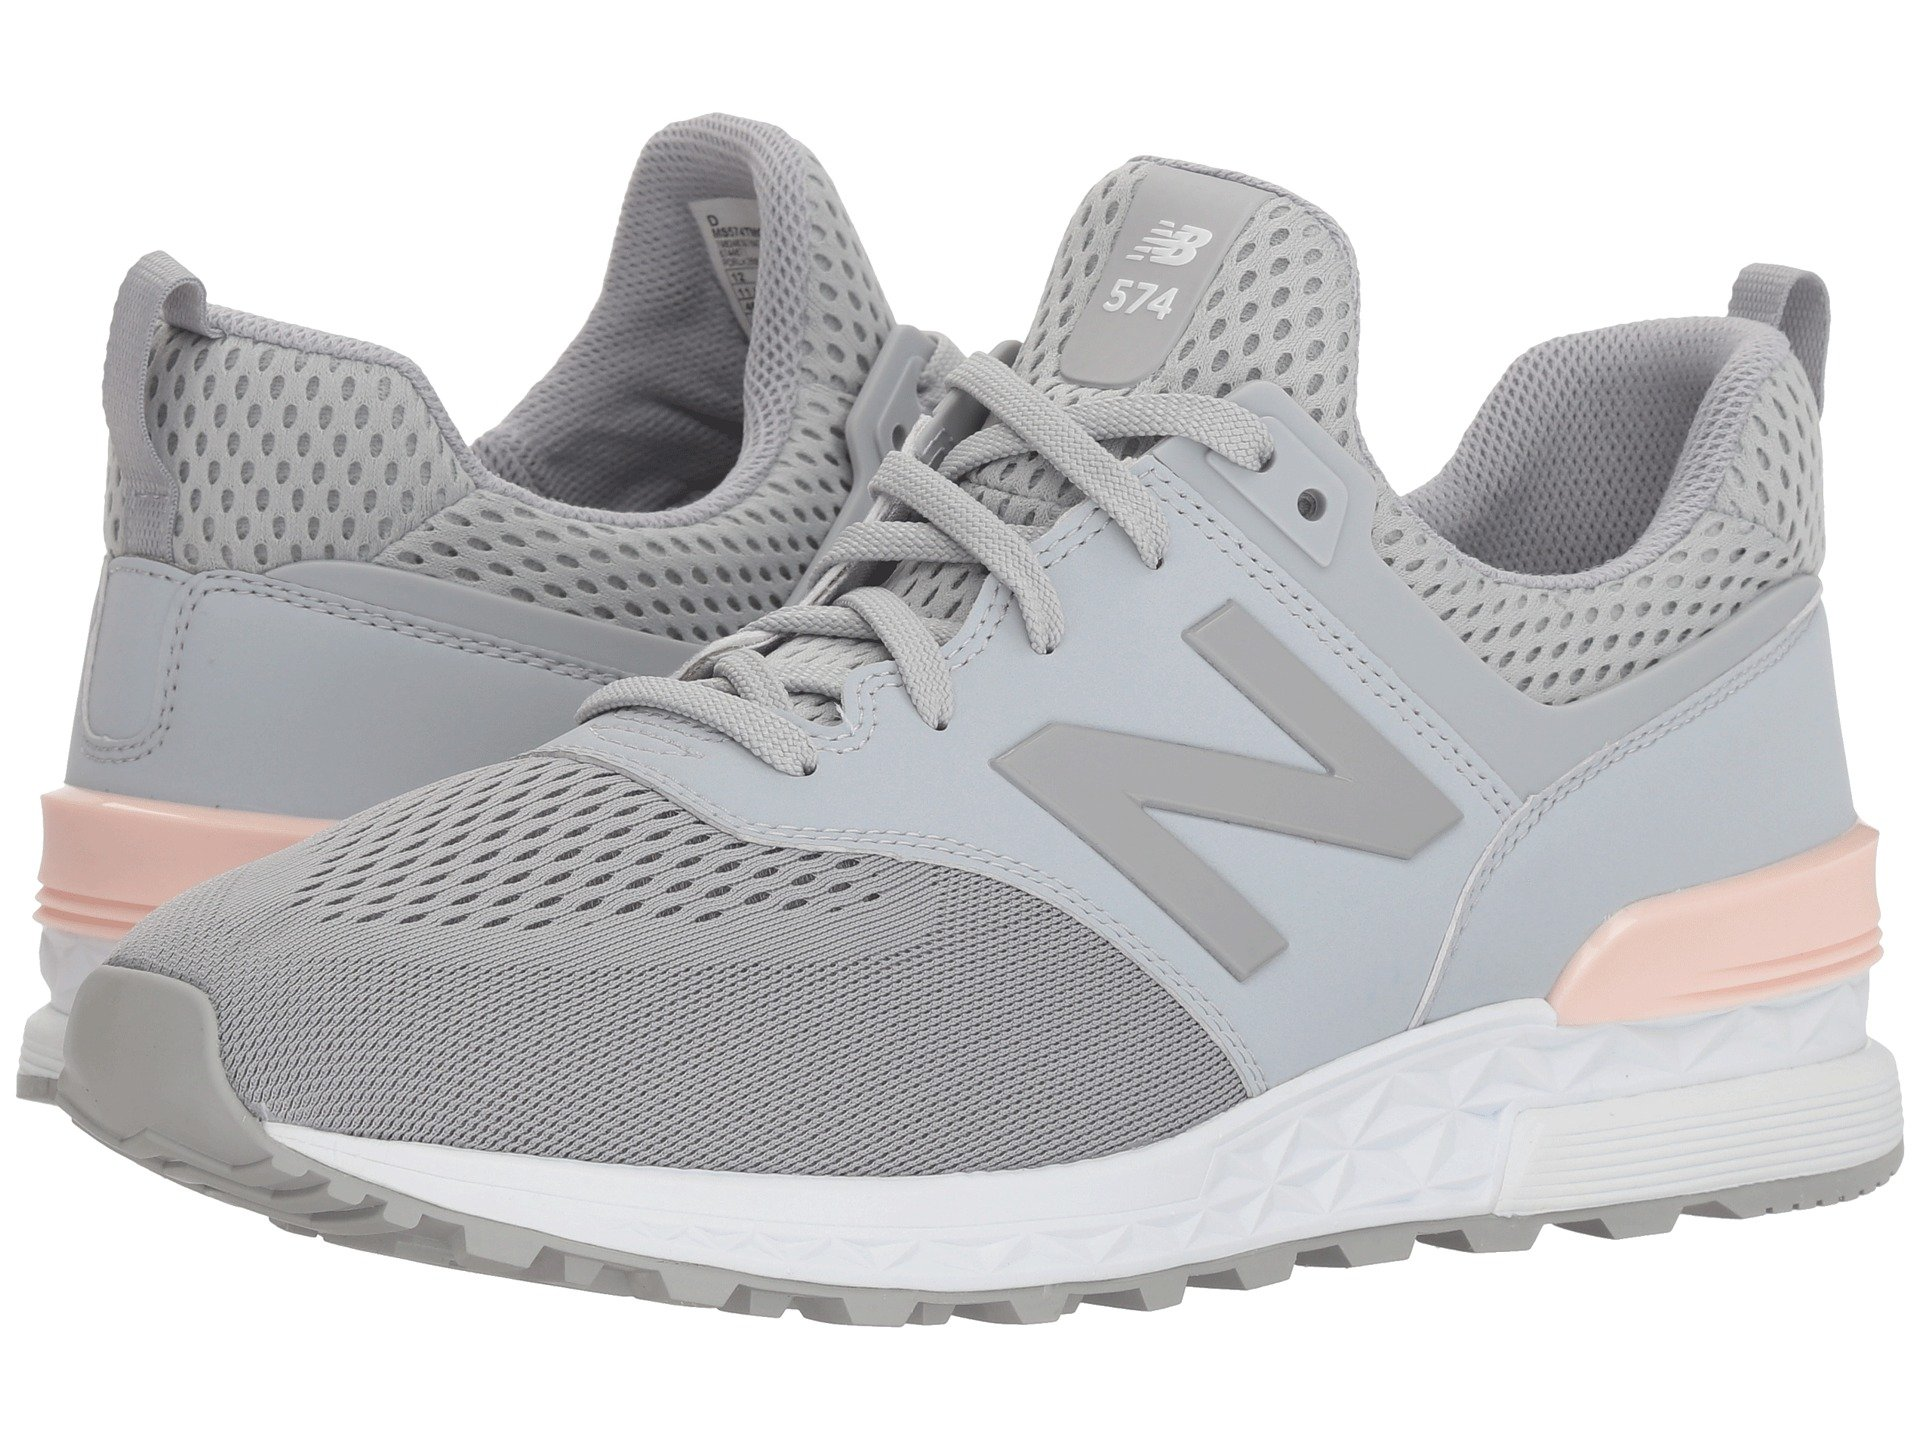 reputable site 58e07 31ad4 Details about New Balance Men's Fashion Sneakers 574 Sport Silver Mink  Sunrise Glo MS574TMG